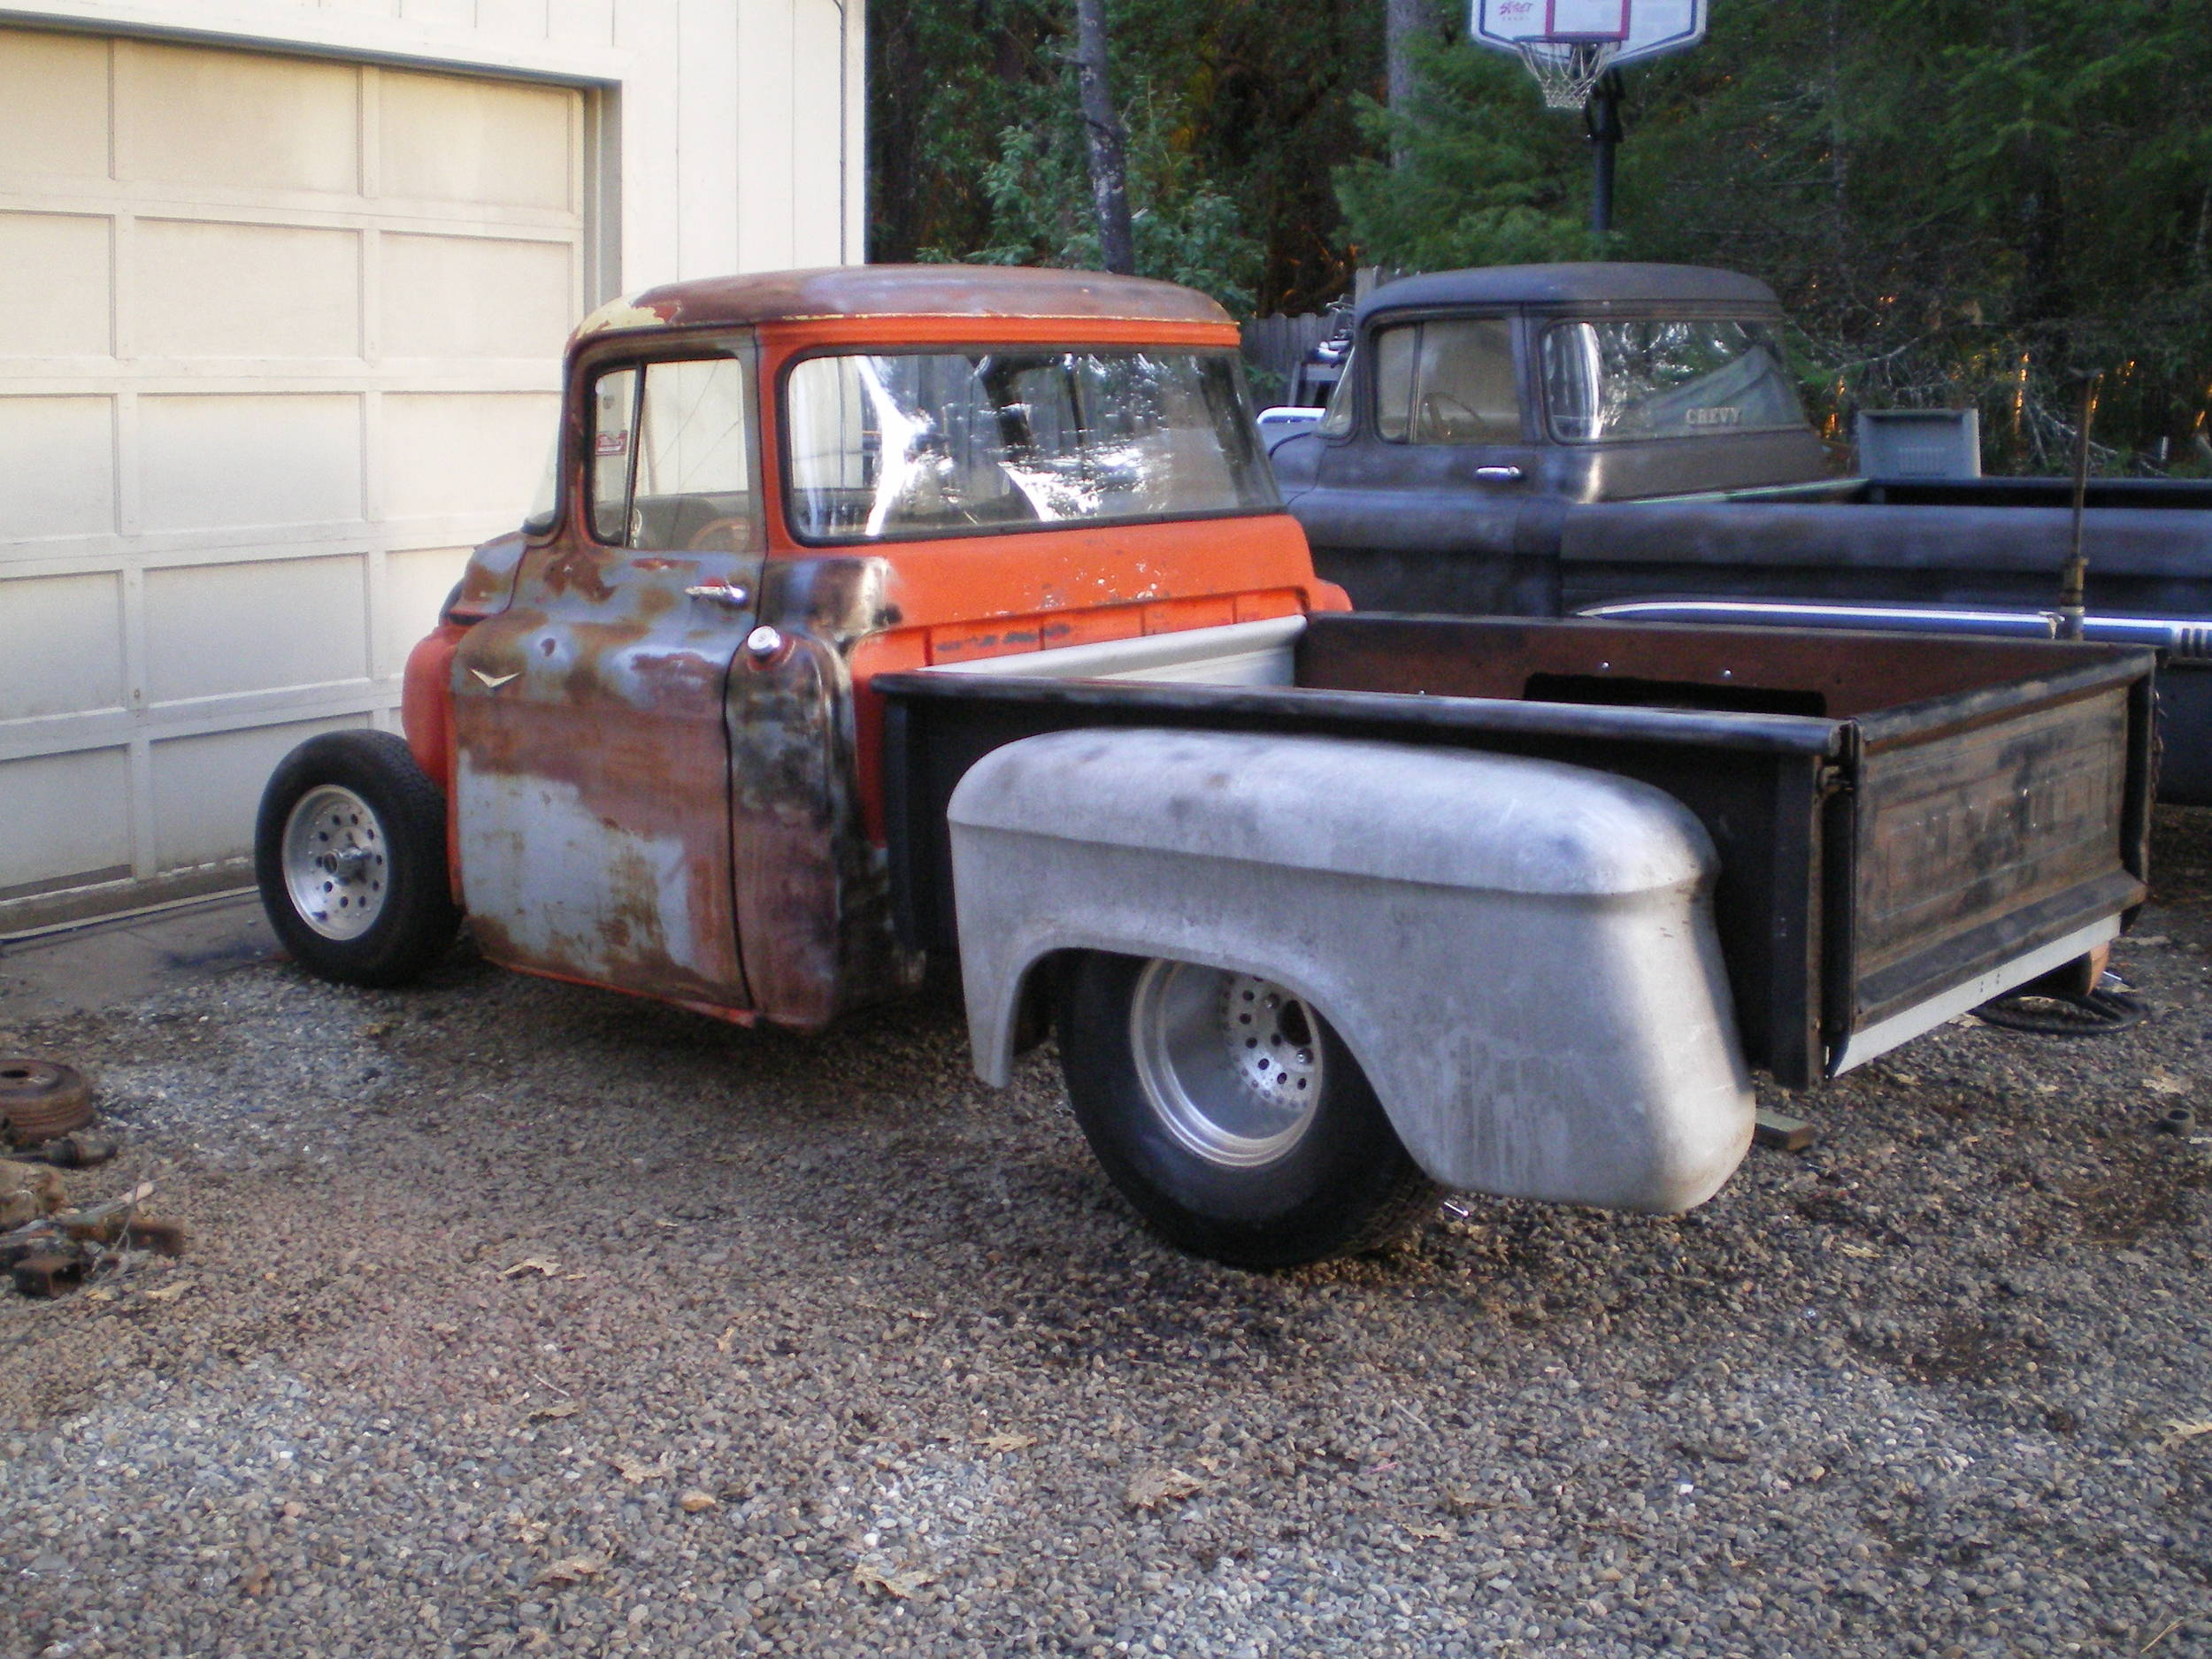 1955 Chevy Truck Rat Rod http://talk.classicparts.com/photos/showphoto.php?photo=1632&size=big&date=1202259104